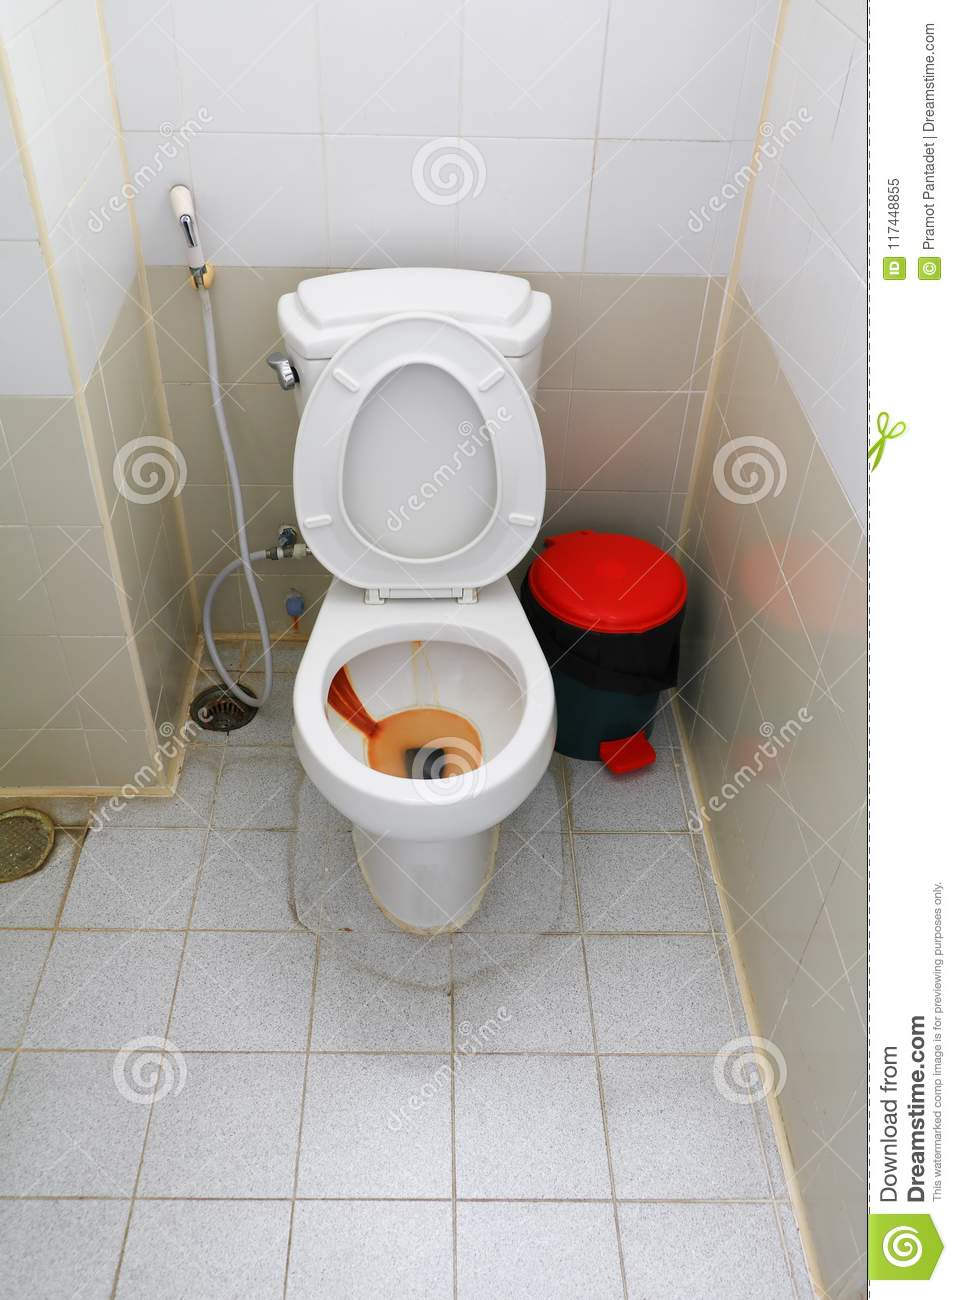 Toilet Dirty Closet Rusty Water And Male Urine In Office Stock Image